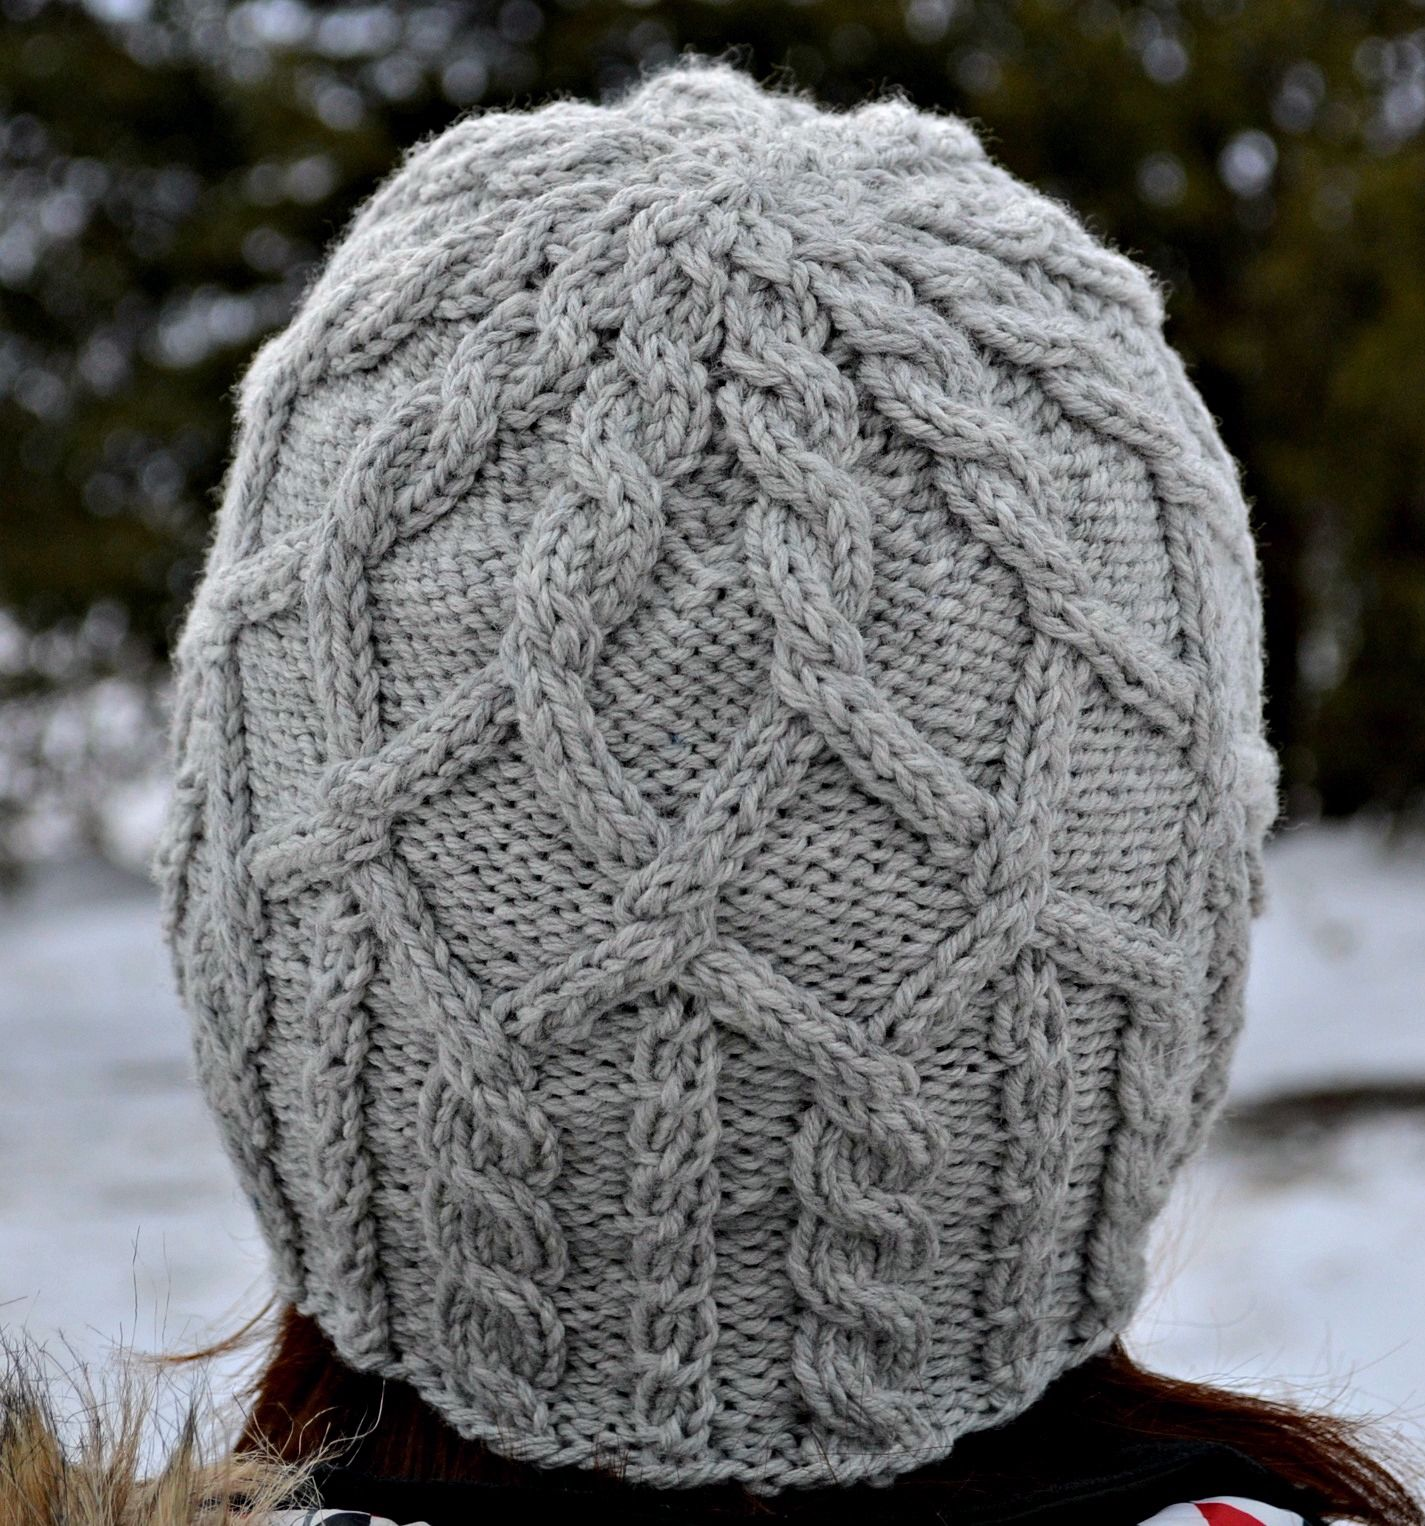 Knitting Pattern Books Hats : Merrick Hat Pattern - Knitting Patterns and Crochet ...